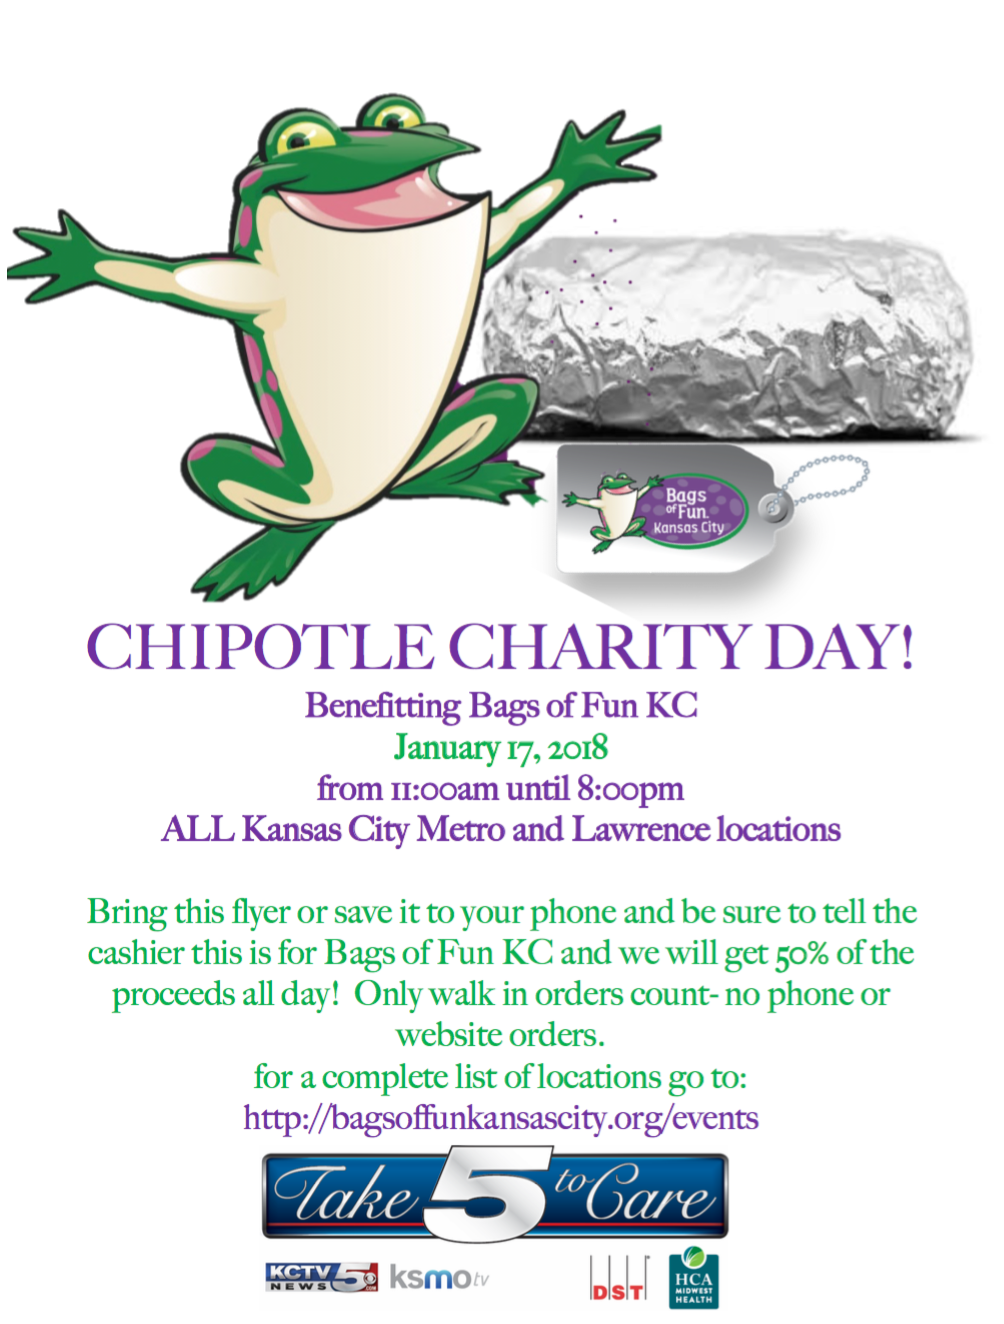 Bring this flyer or show it on your phone and be sure tell your cashier at any Kansas City or Lawrence Chipotle. (Chipolte)